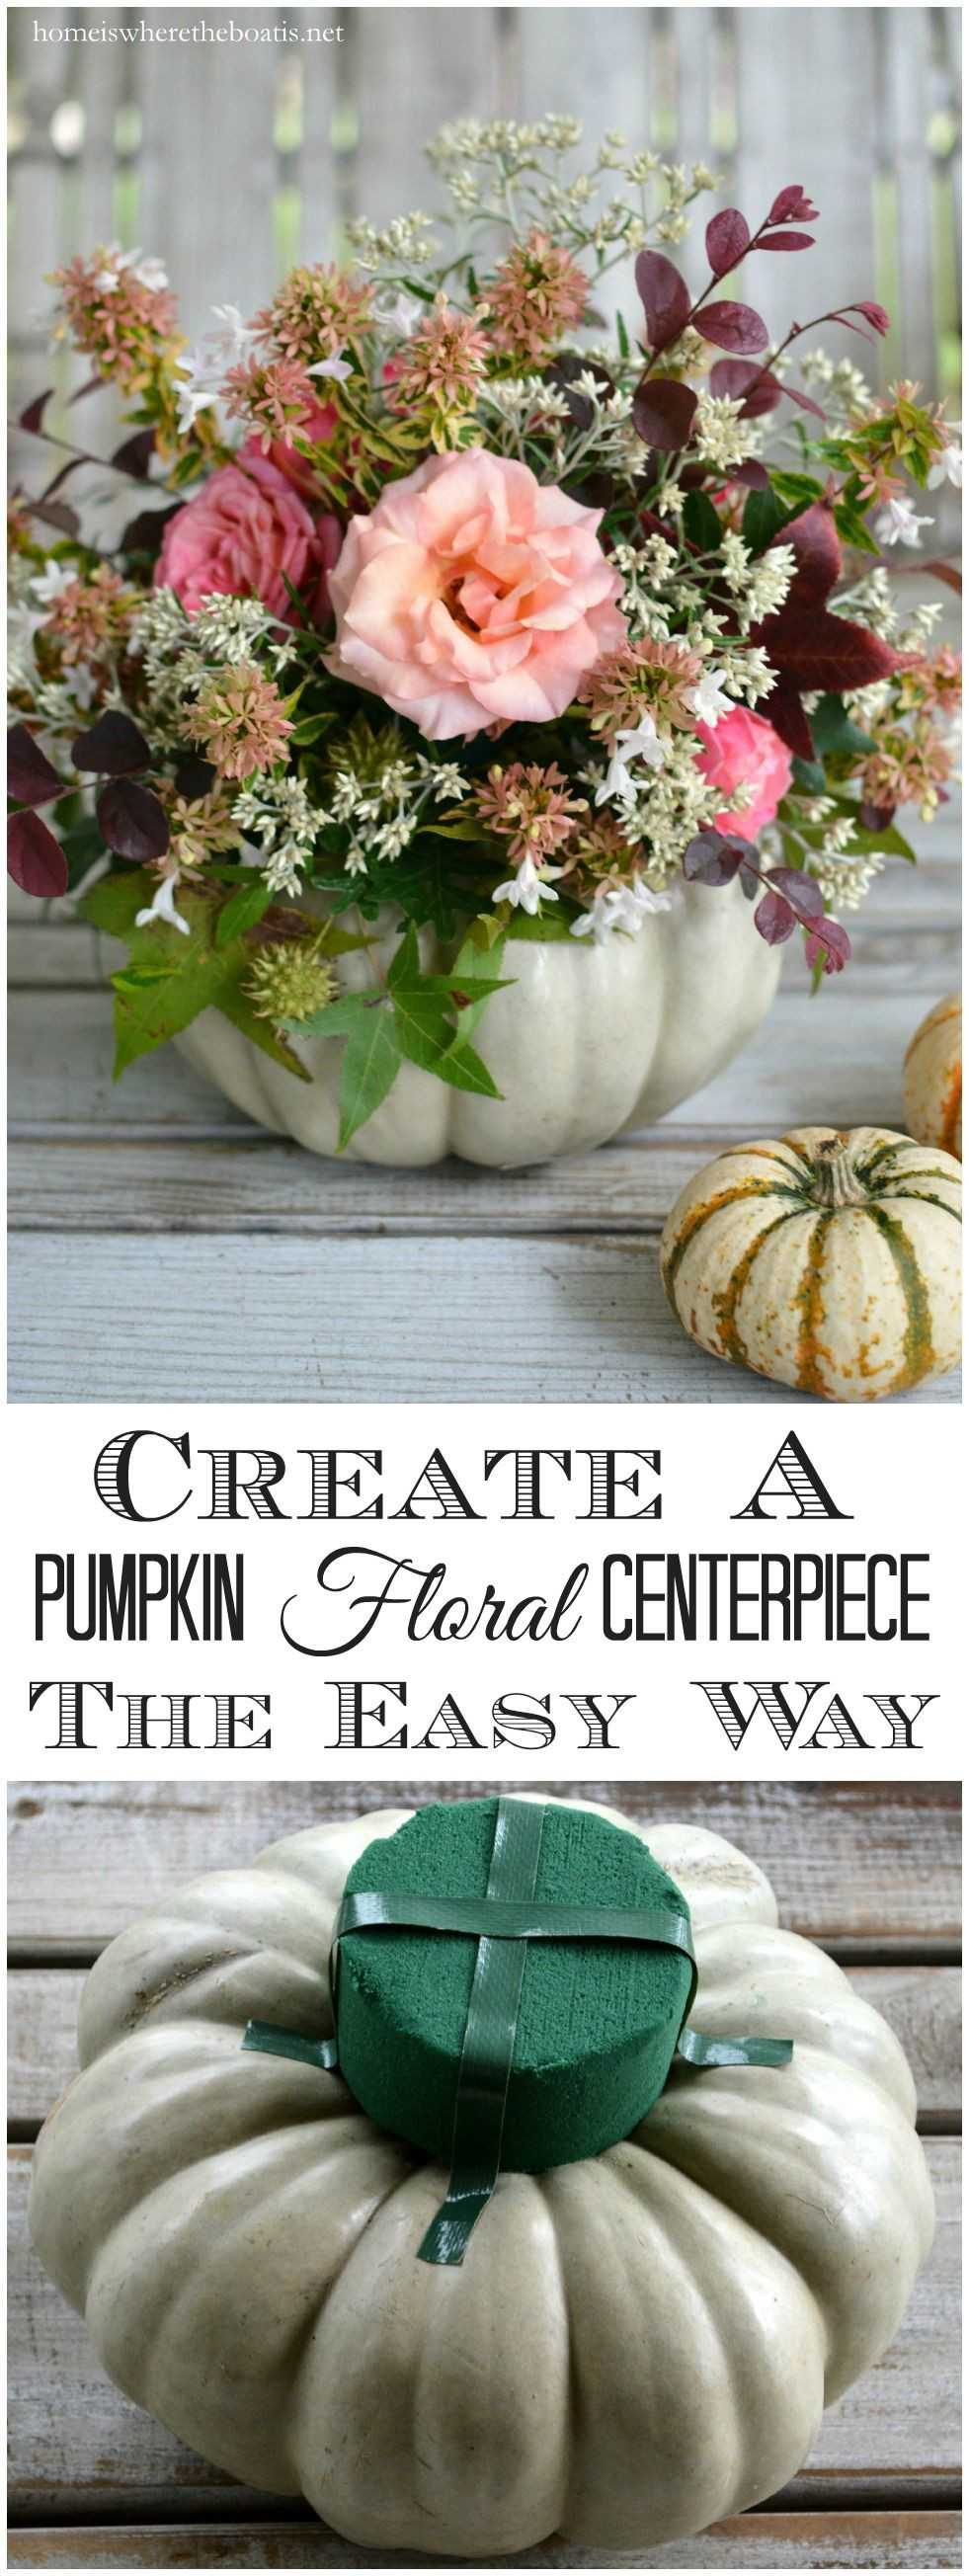 Create a Pumpkin Floral Centerpiece the easy way no carving required